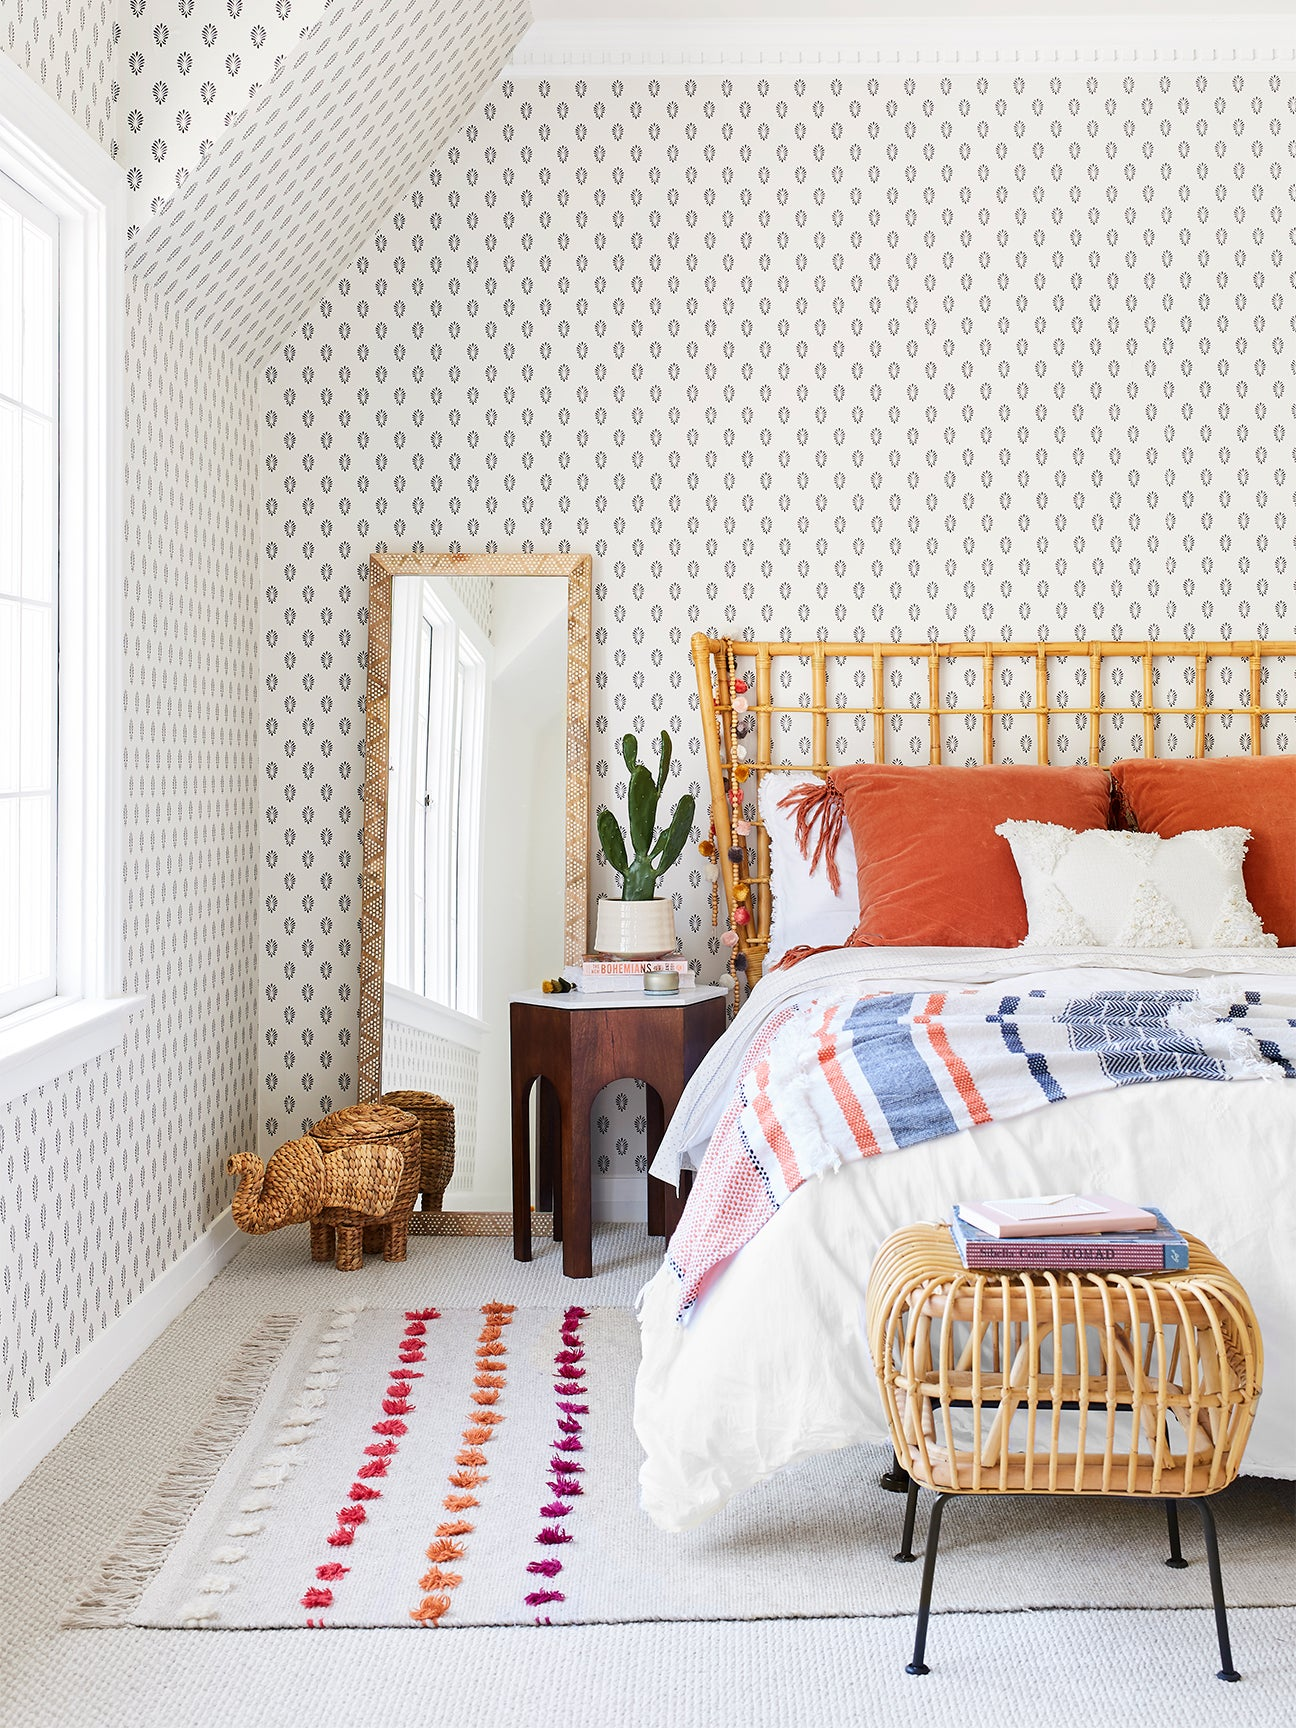 light and airy bedroom with patterned wallpaper